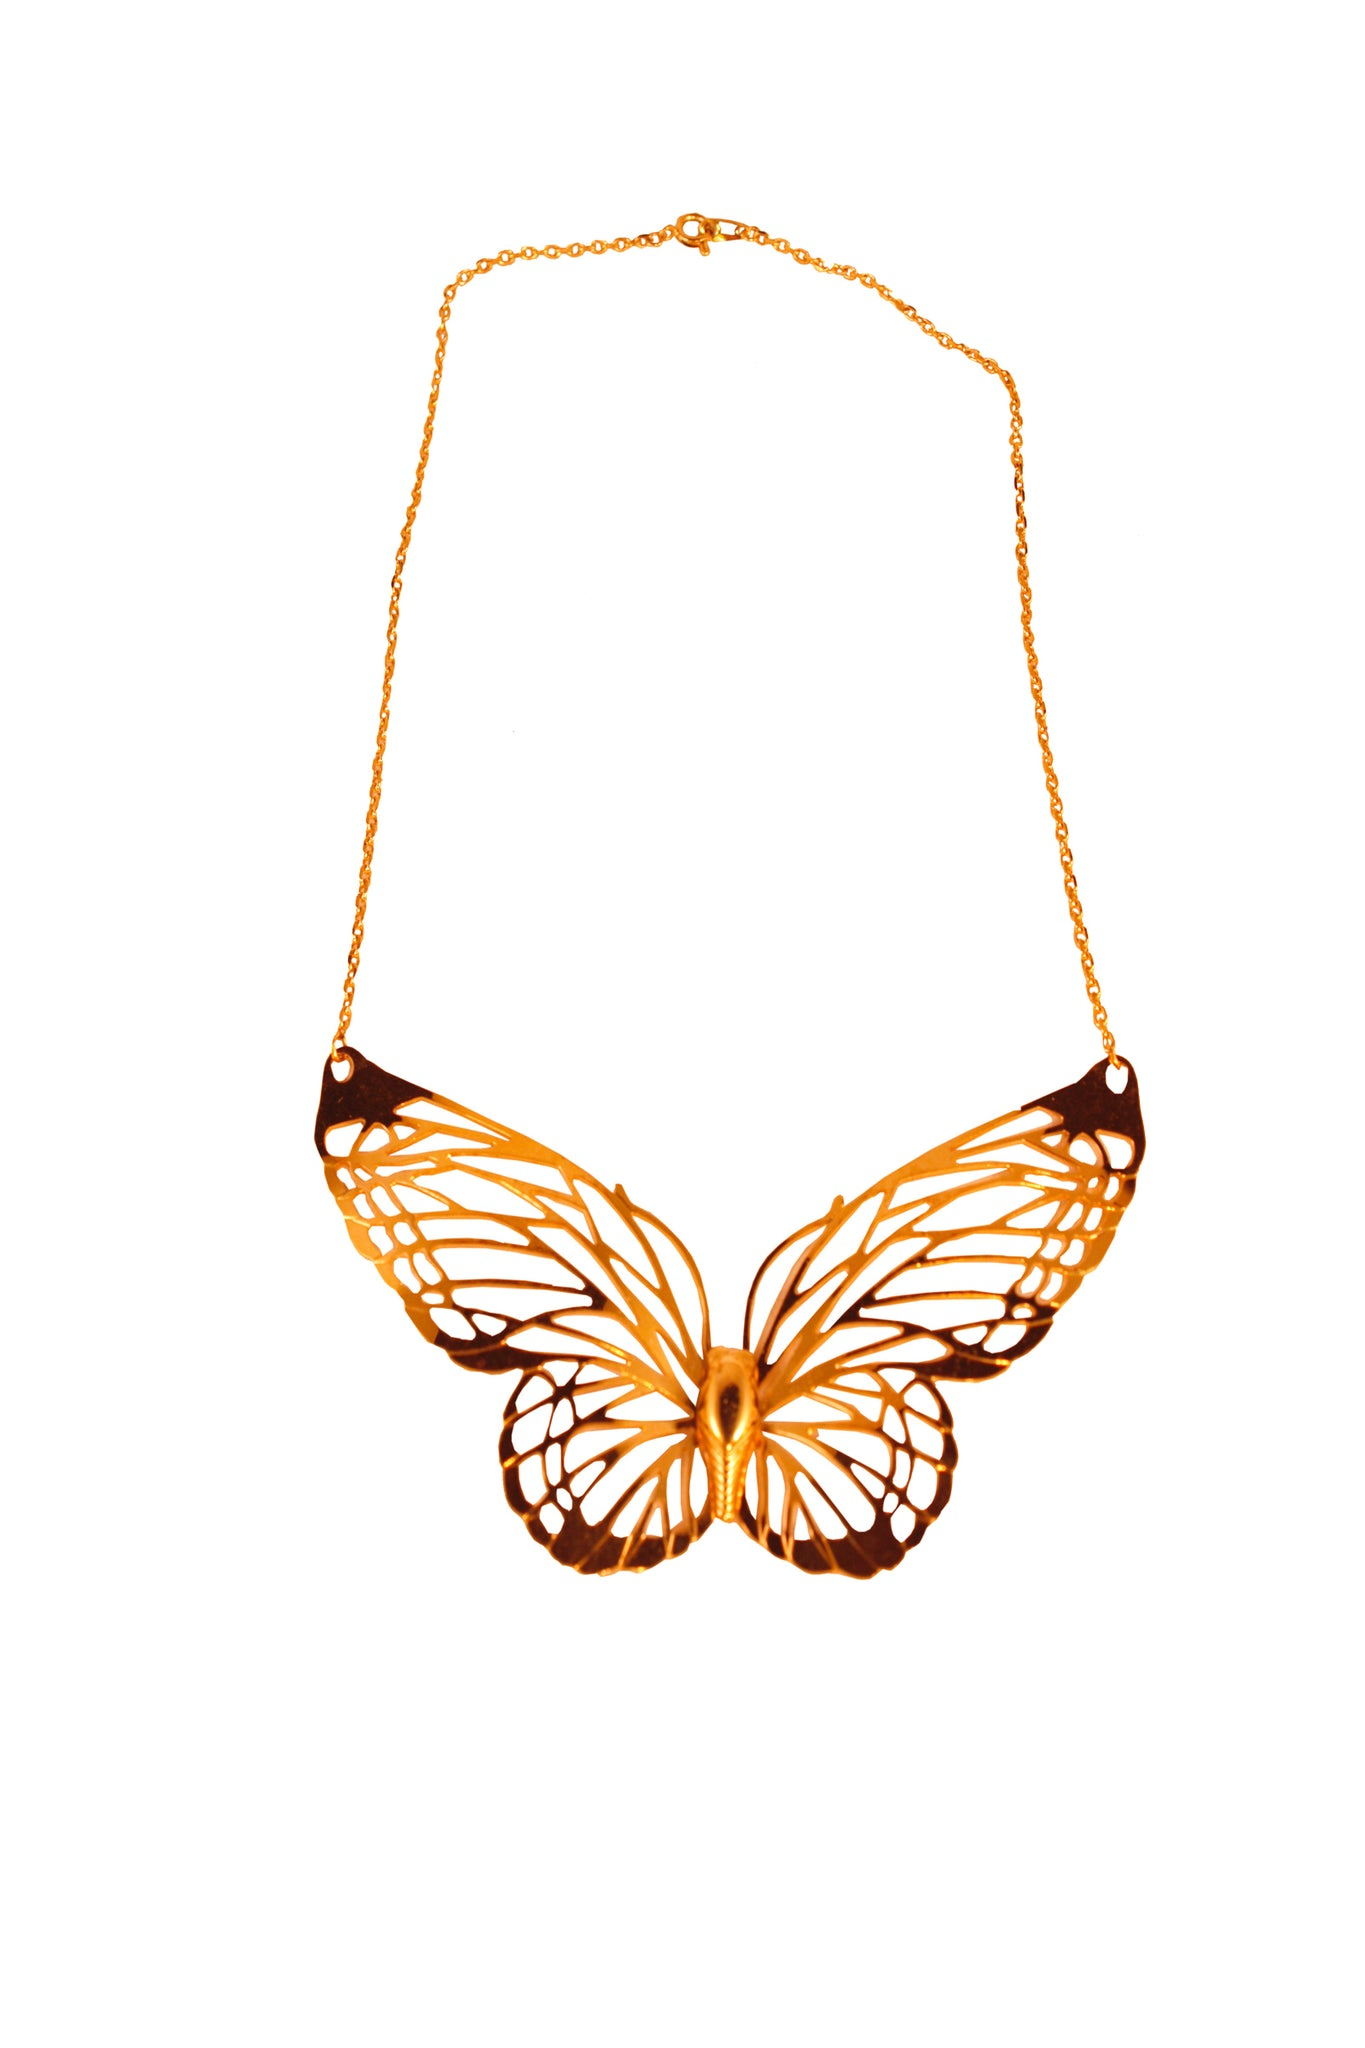 Vintage 40's butterfly necklace by Trifari - SoLovesVintage